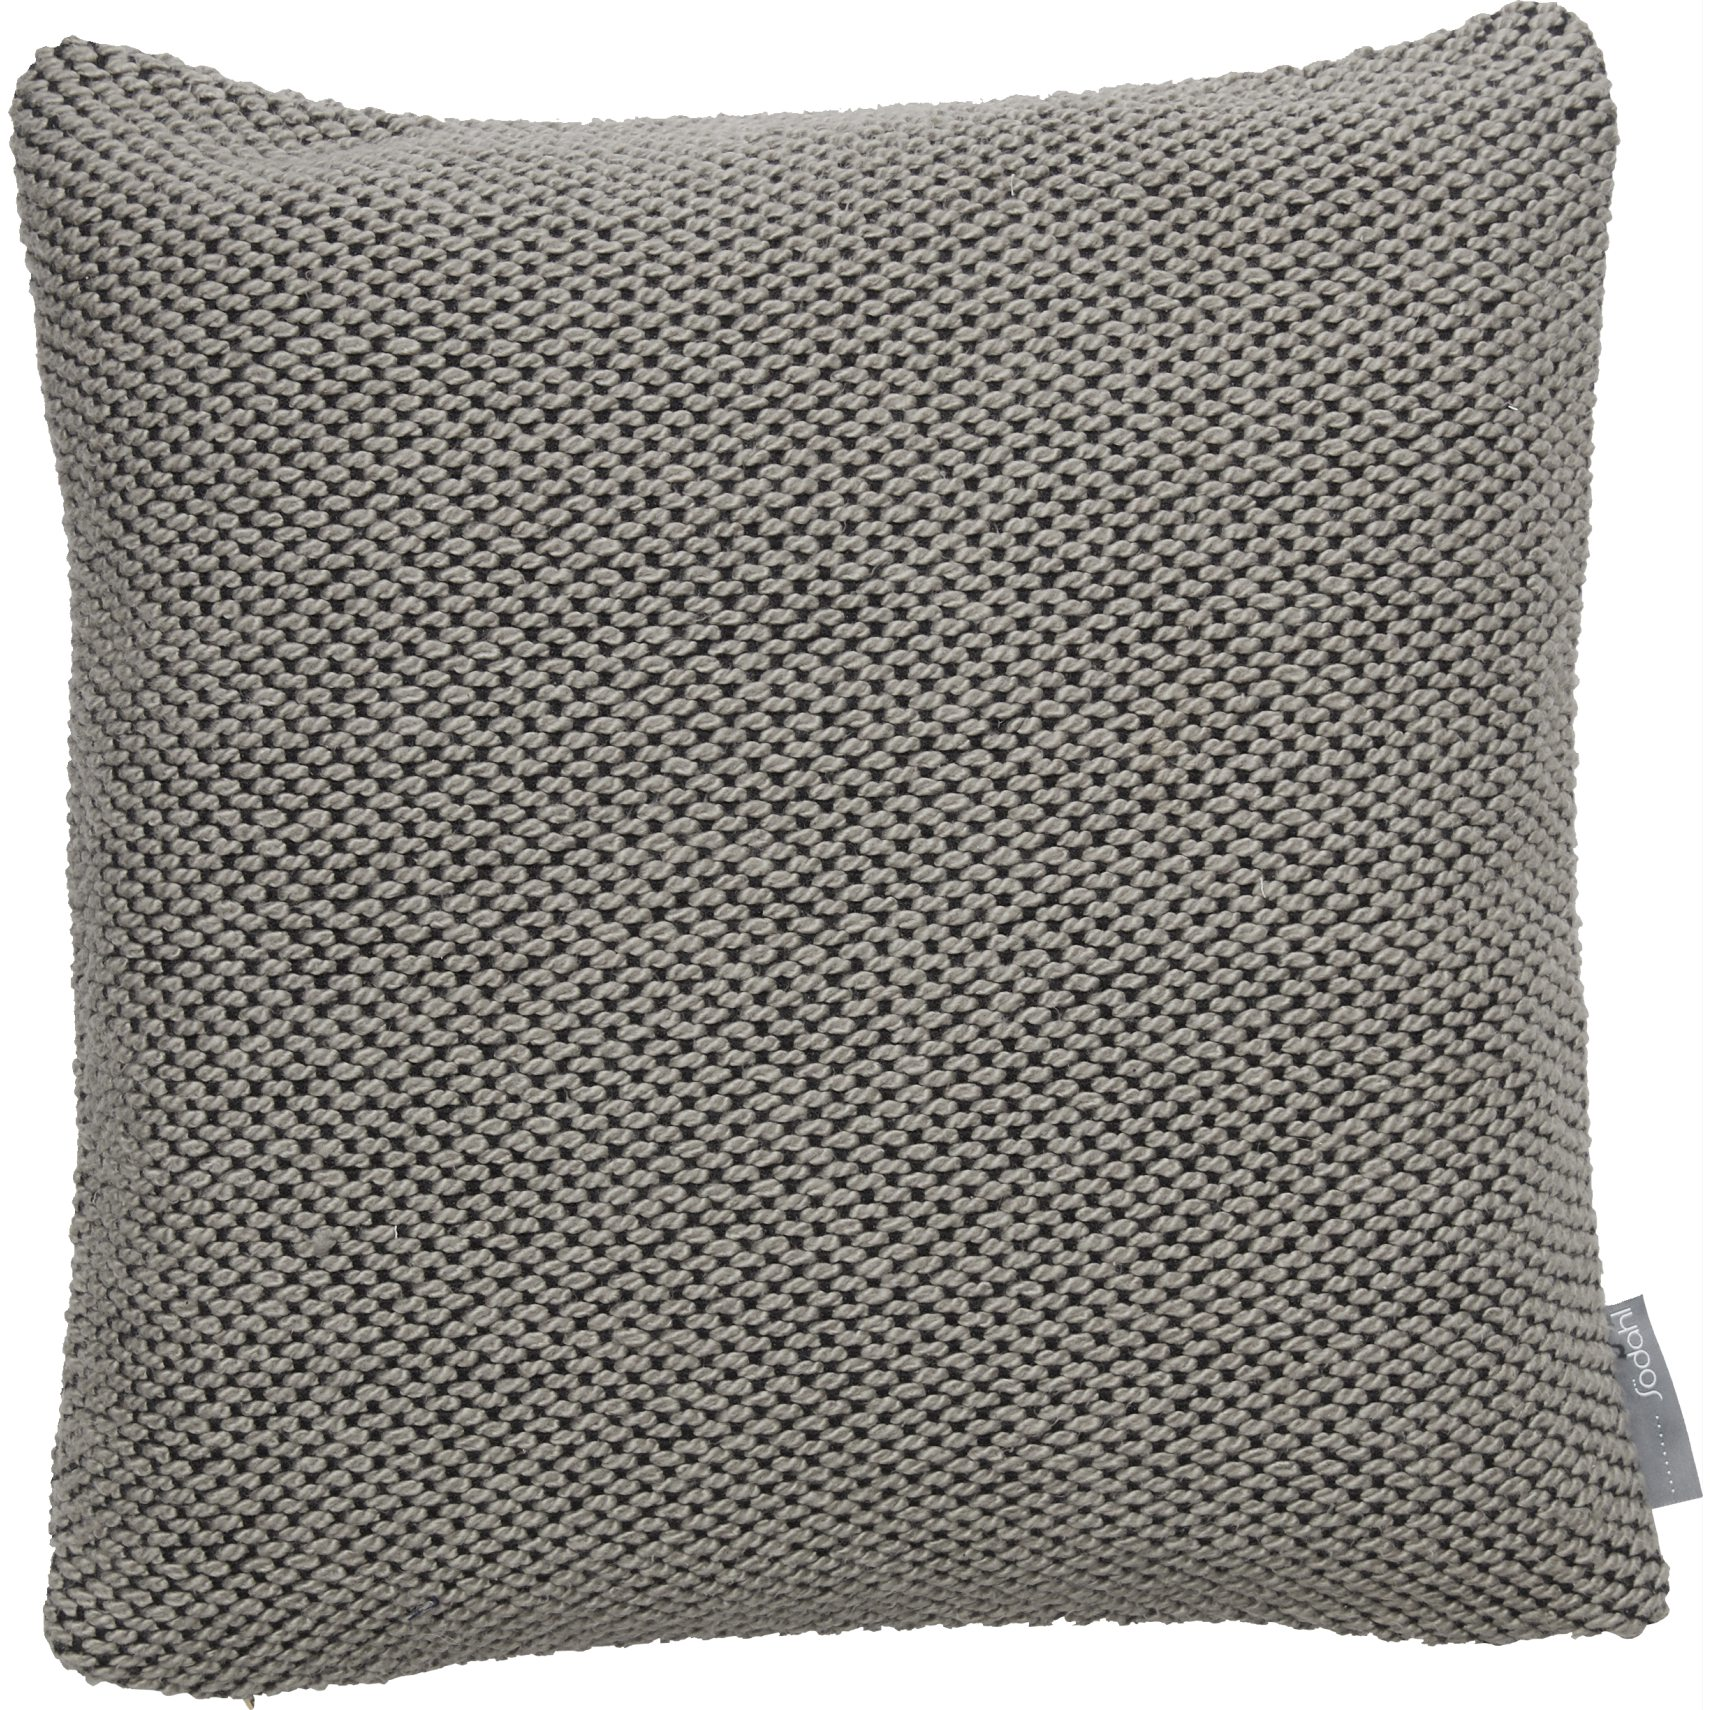 Södahl Basic knit Pude - Drizzle bomuld/akryl